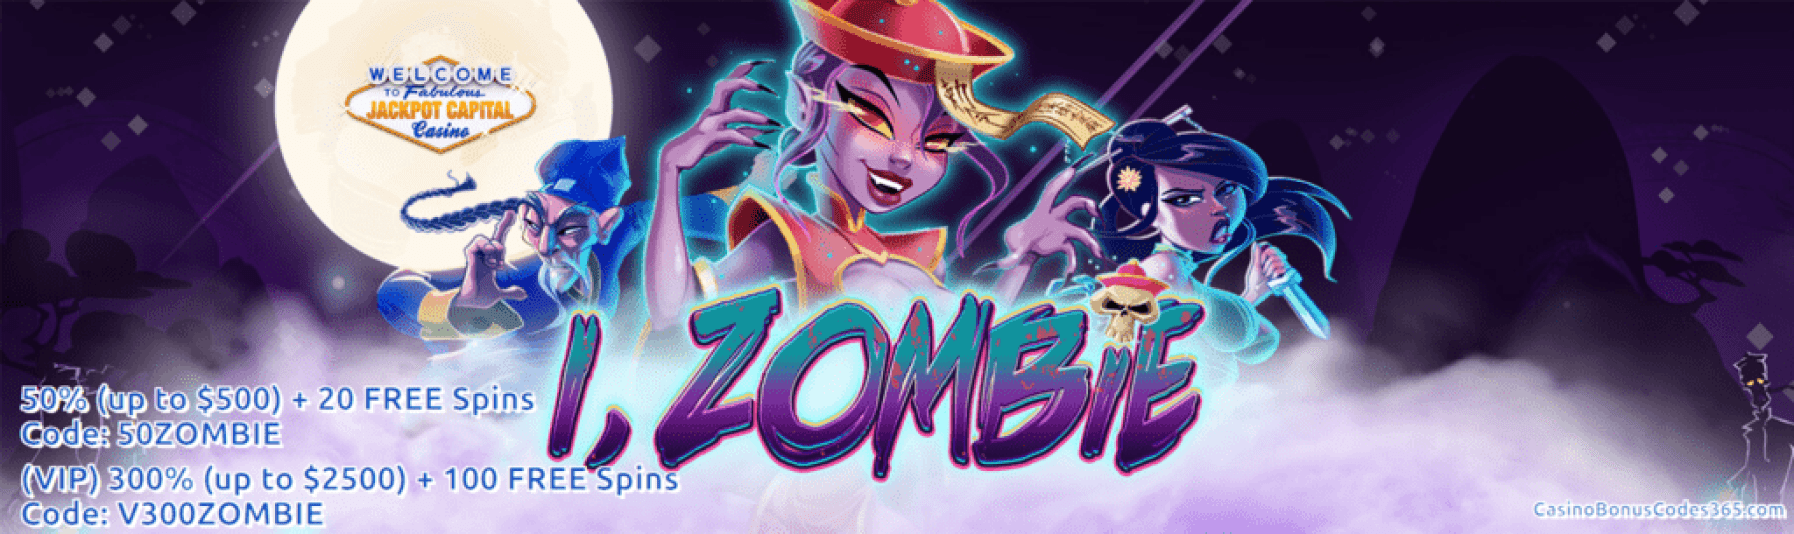 Jackpot Capital New RTG Game i Zombie 100% Bonus and 40 FREE Spins